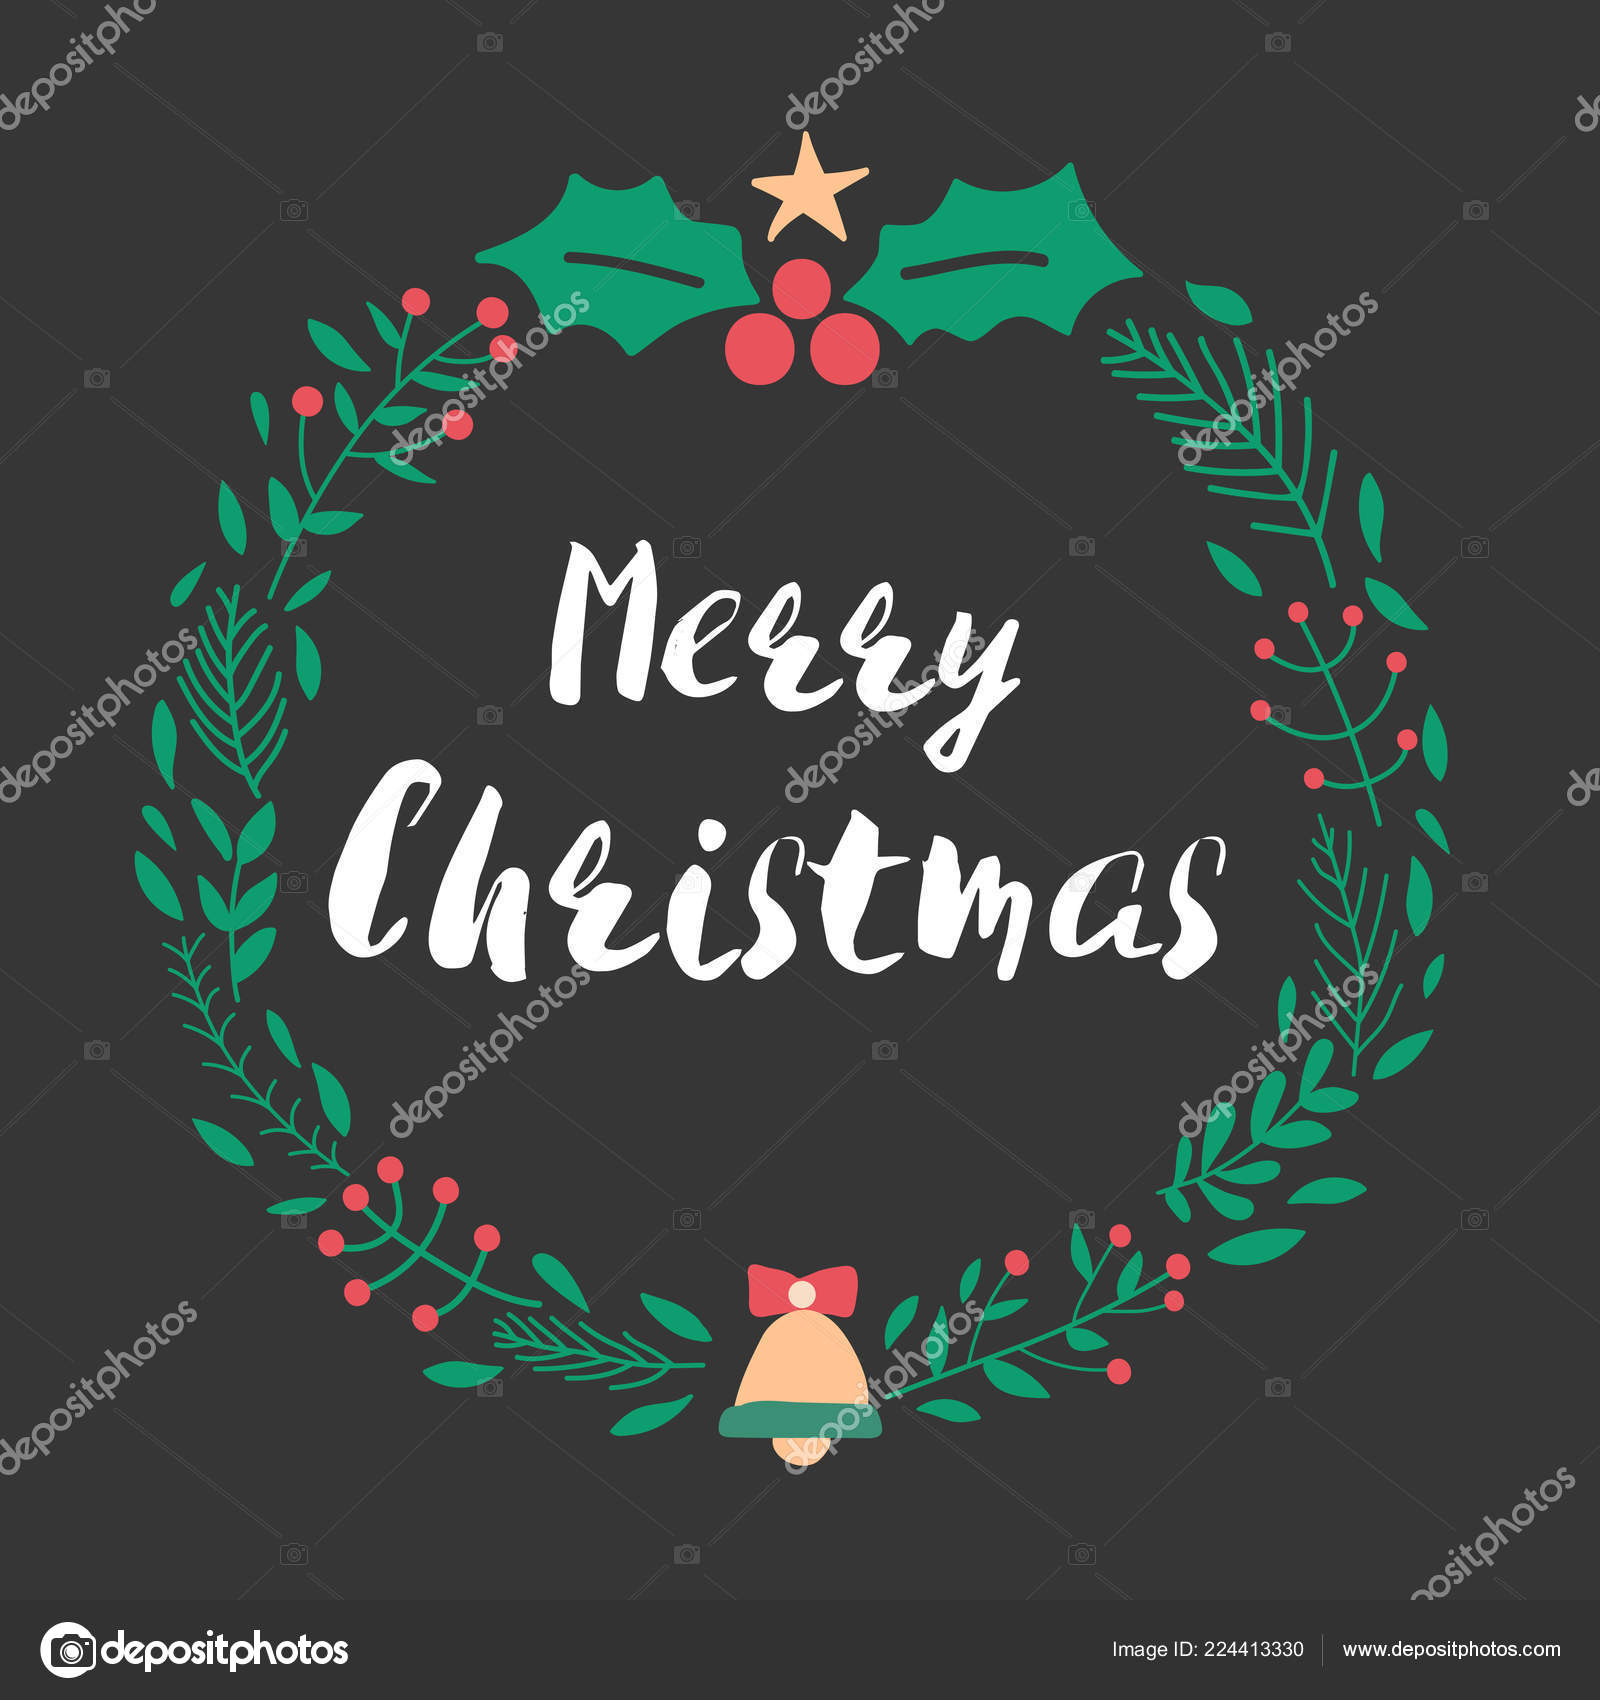 christmas and new year greeting or invitation card christmas lettering design with wreath decorationvector illustration vector by kosonphotogmailcom